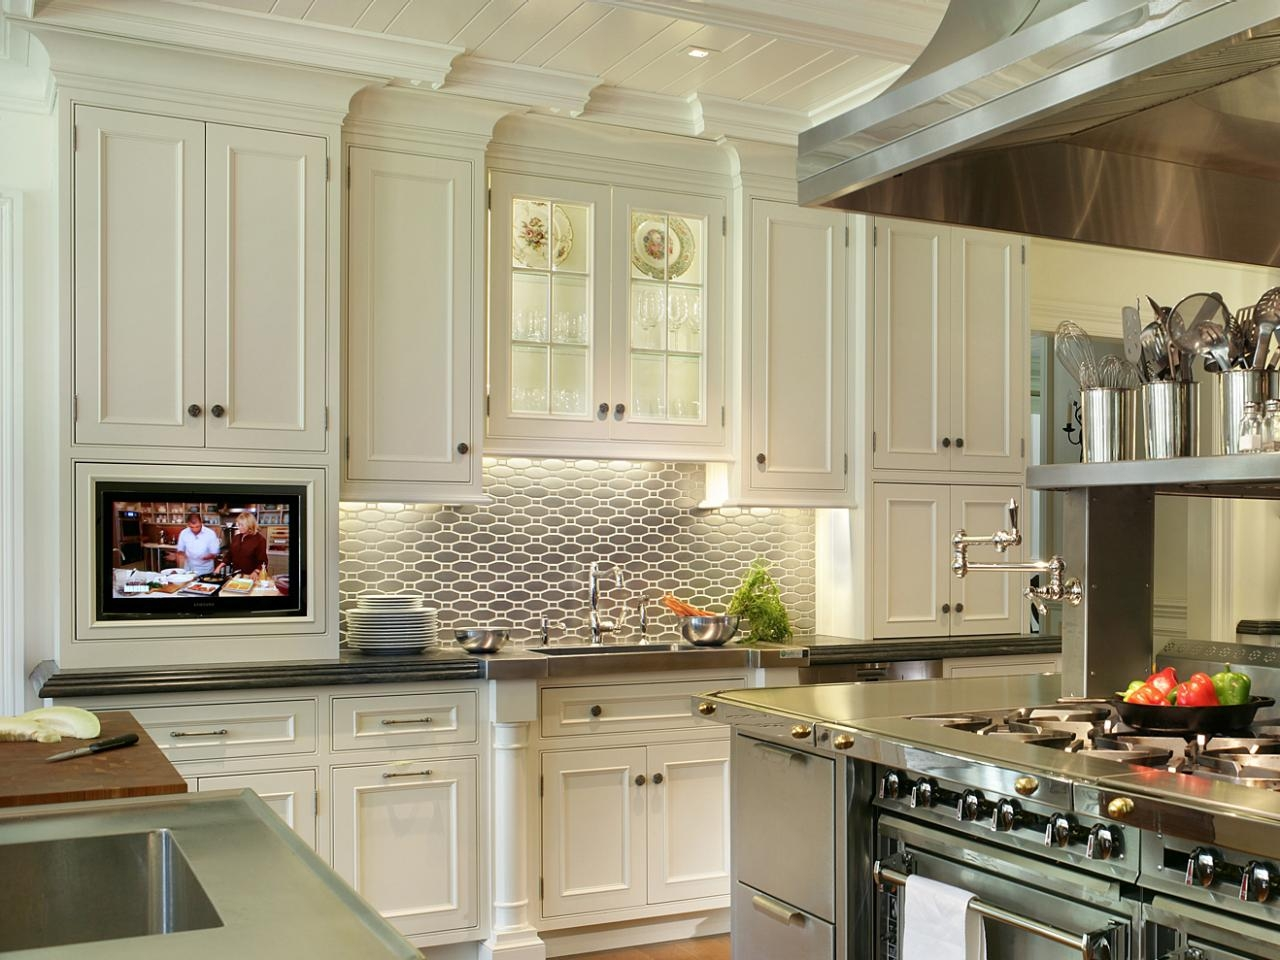 Extra High Kitchen Wall Cabinets